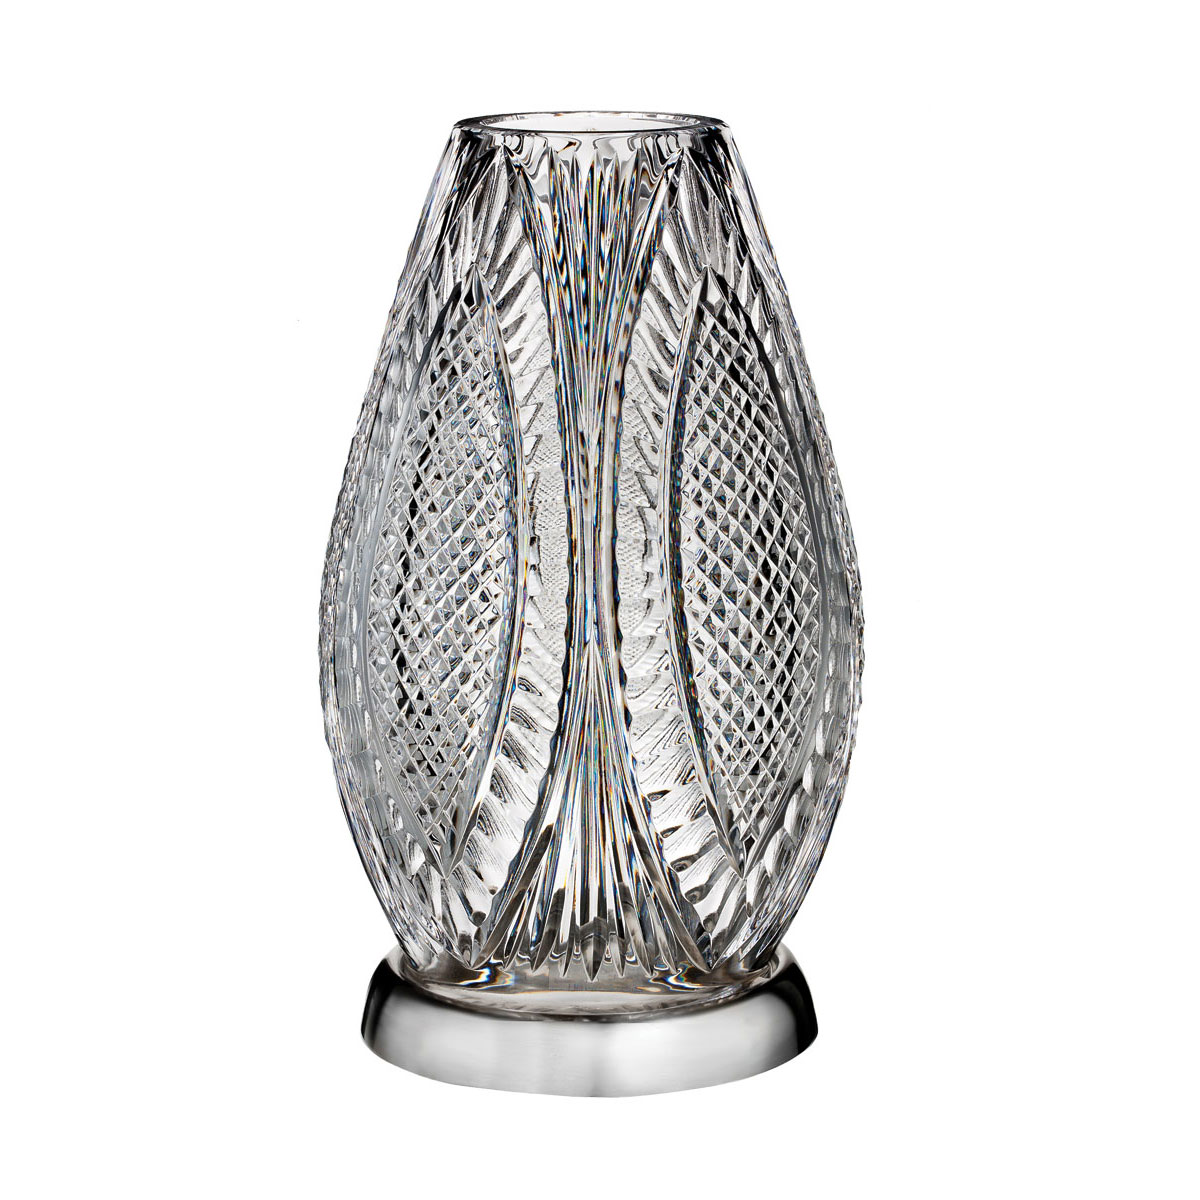 "Waterford Crystal, House of Waterford Reflections Hurricane 12"", Limited Edition of 100"